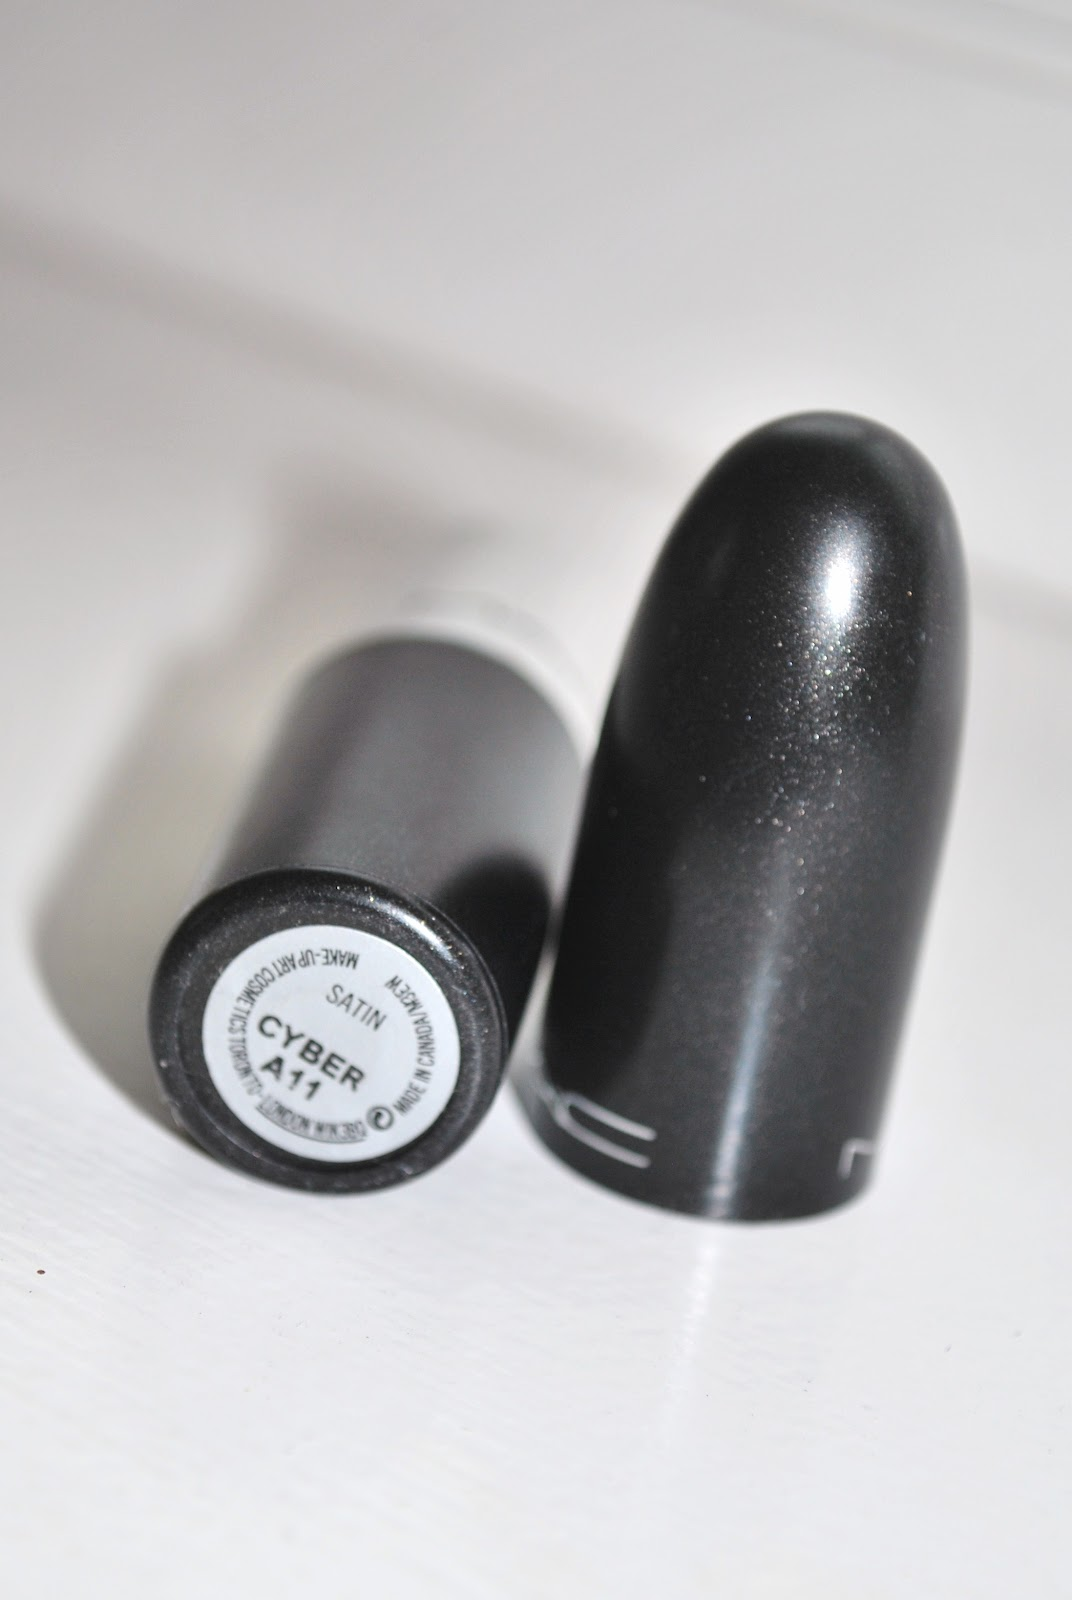 MAC Cyber lipstick review